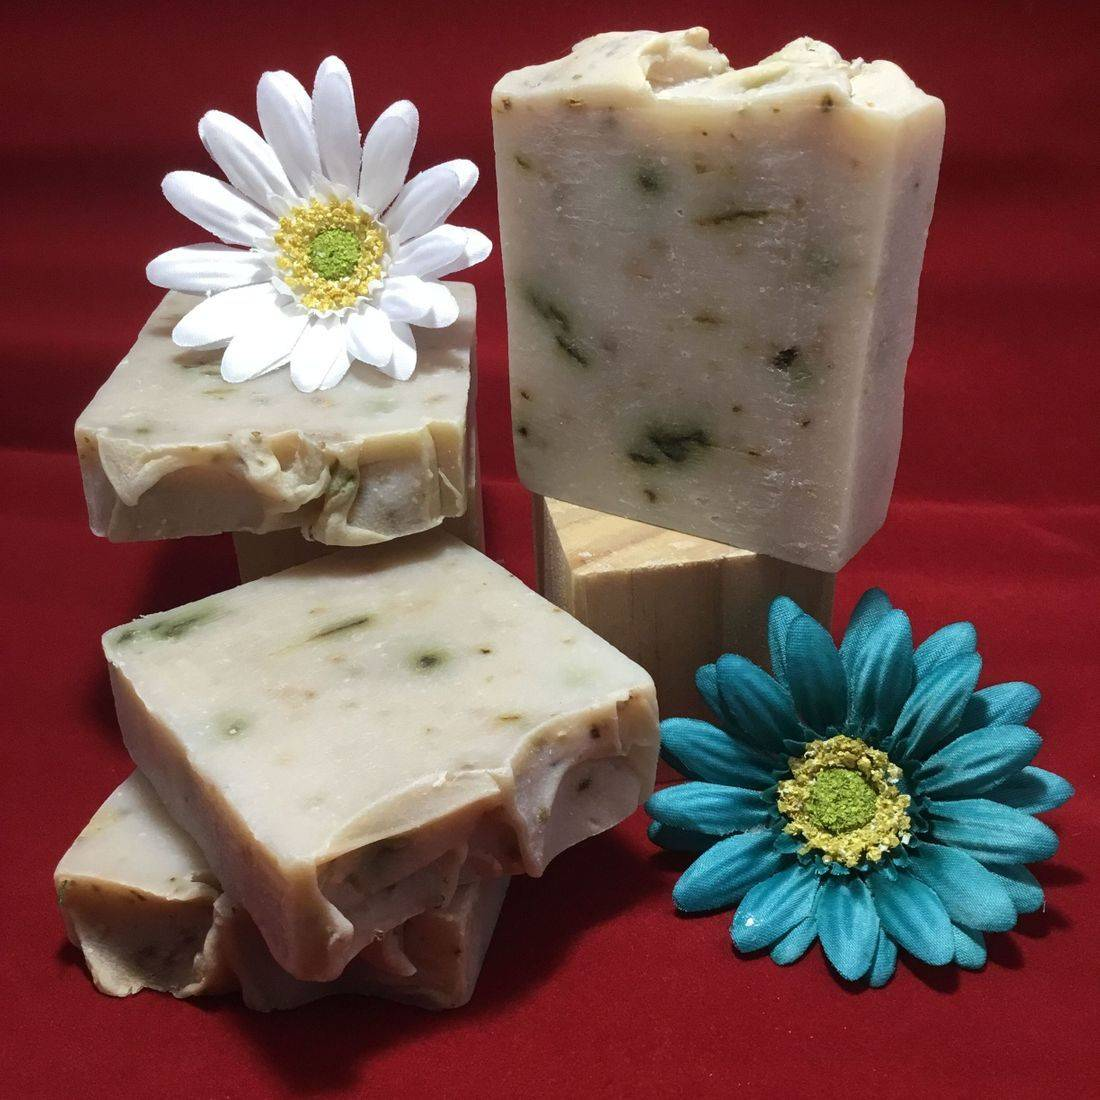 http://www.etsy.com/listing/514433396/coconut-lime-natural-soap?ref=shop_home_active_7